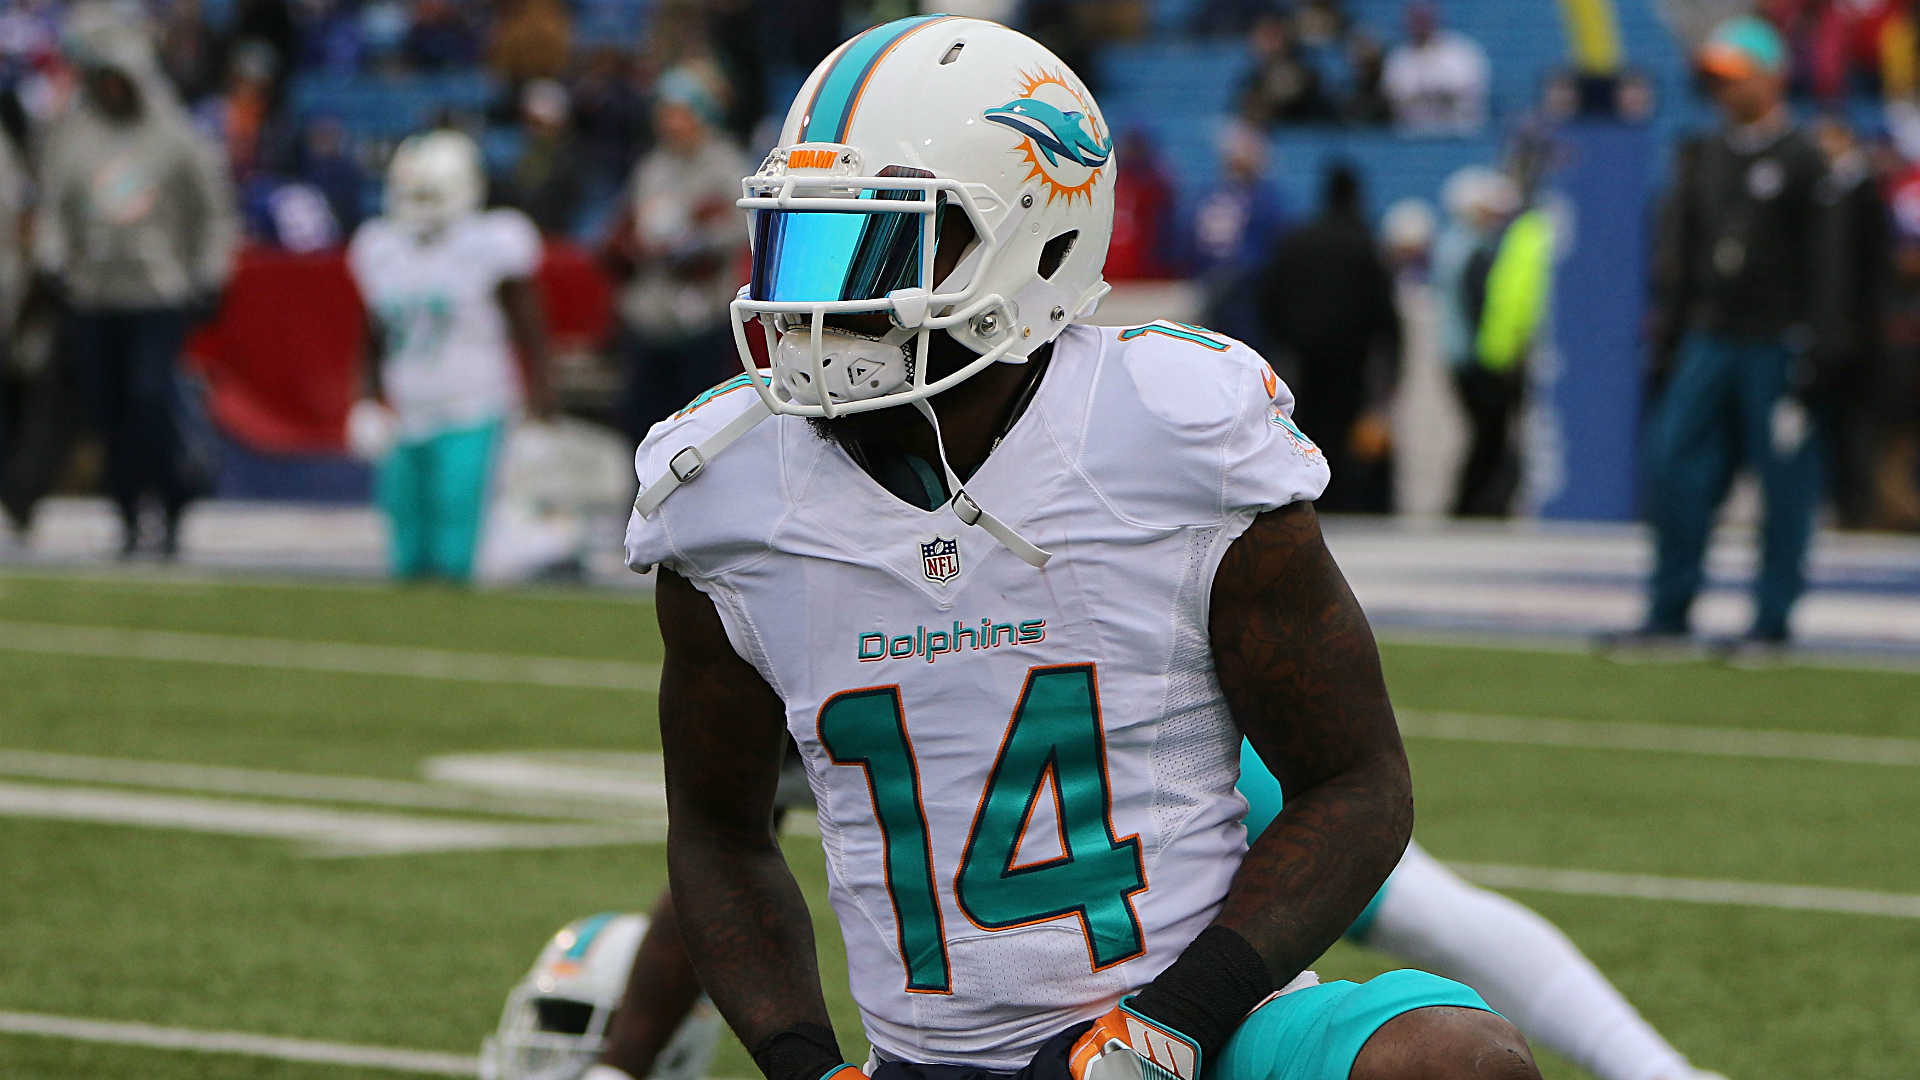 Dolphins WR Jarvis Landry is under investigation for battery